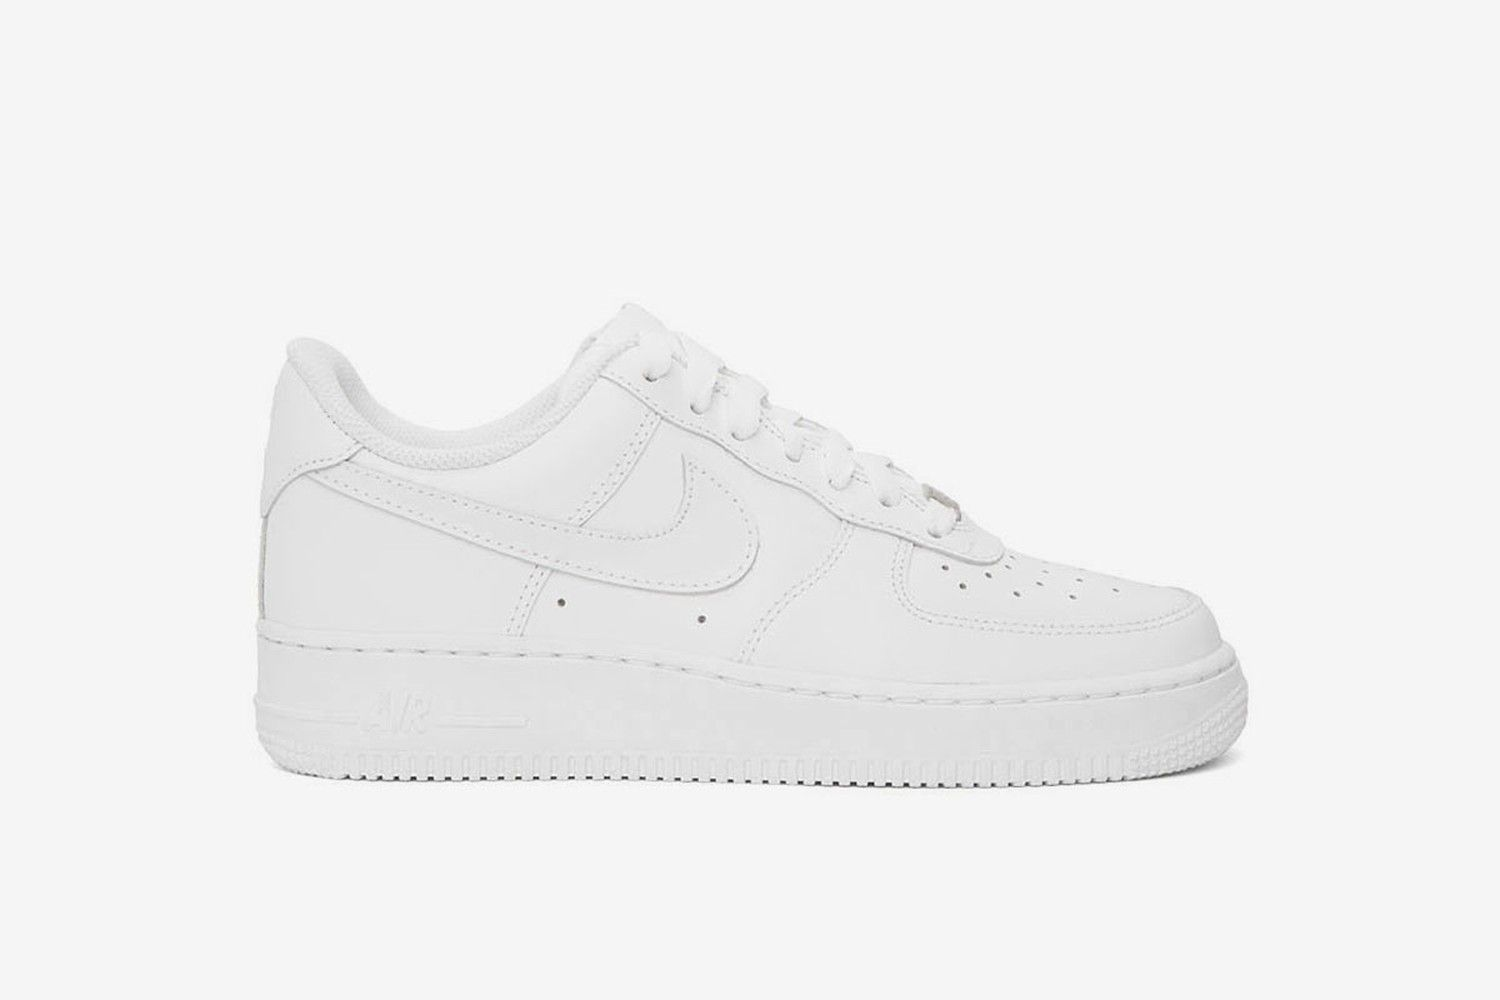 The Best Nike Air Force 1 Sneakers for Every Budget